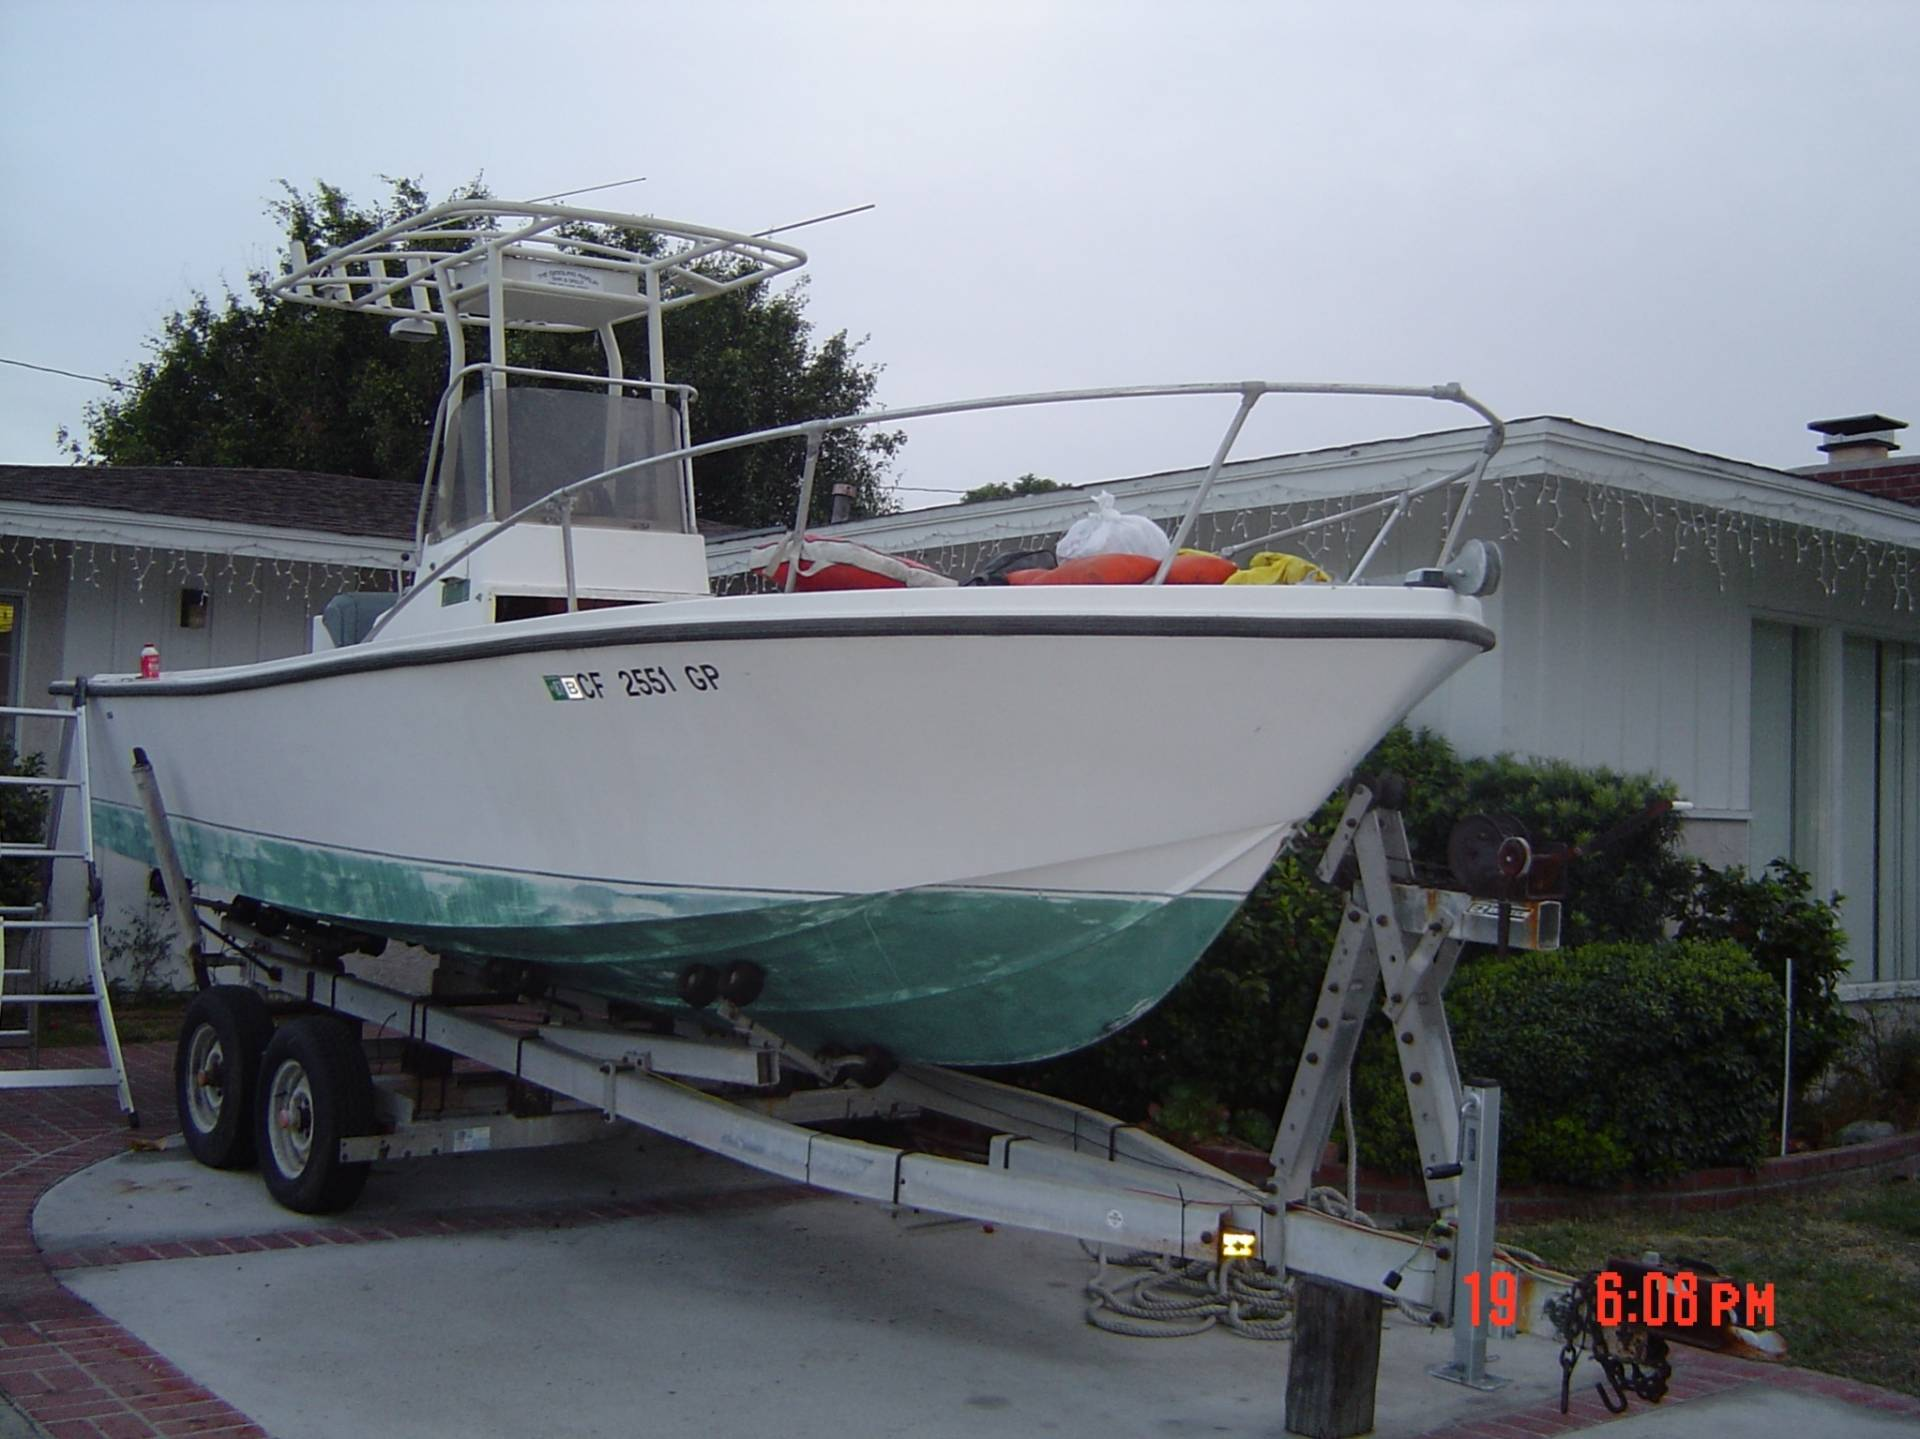 1979 mako 23ft center console project boat bloodydecks for Center console fishing boats for sale